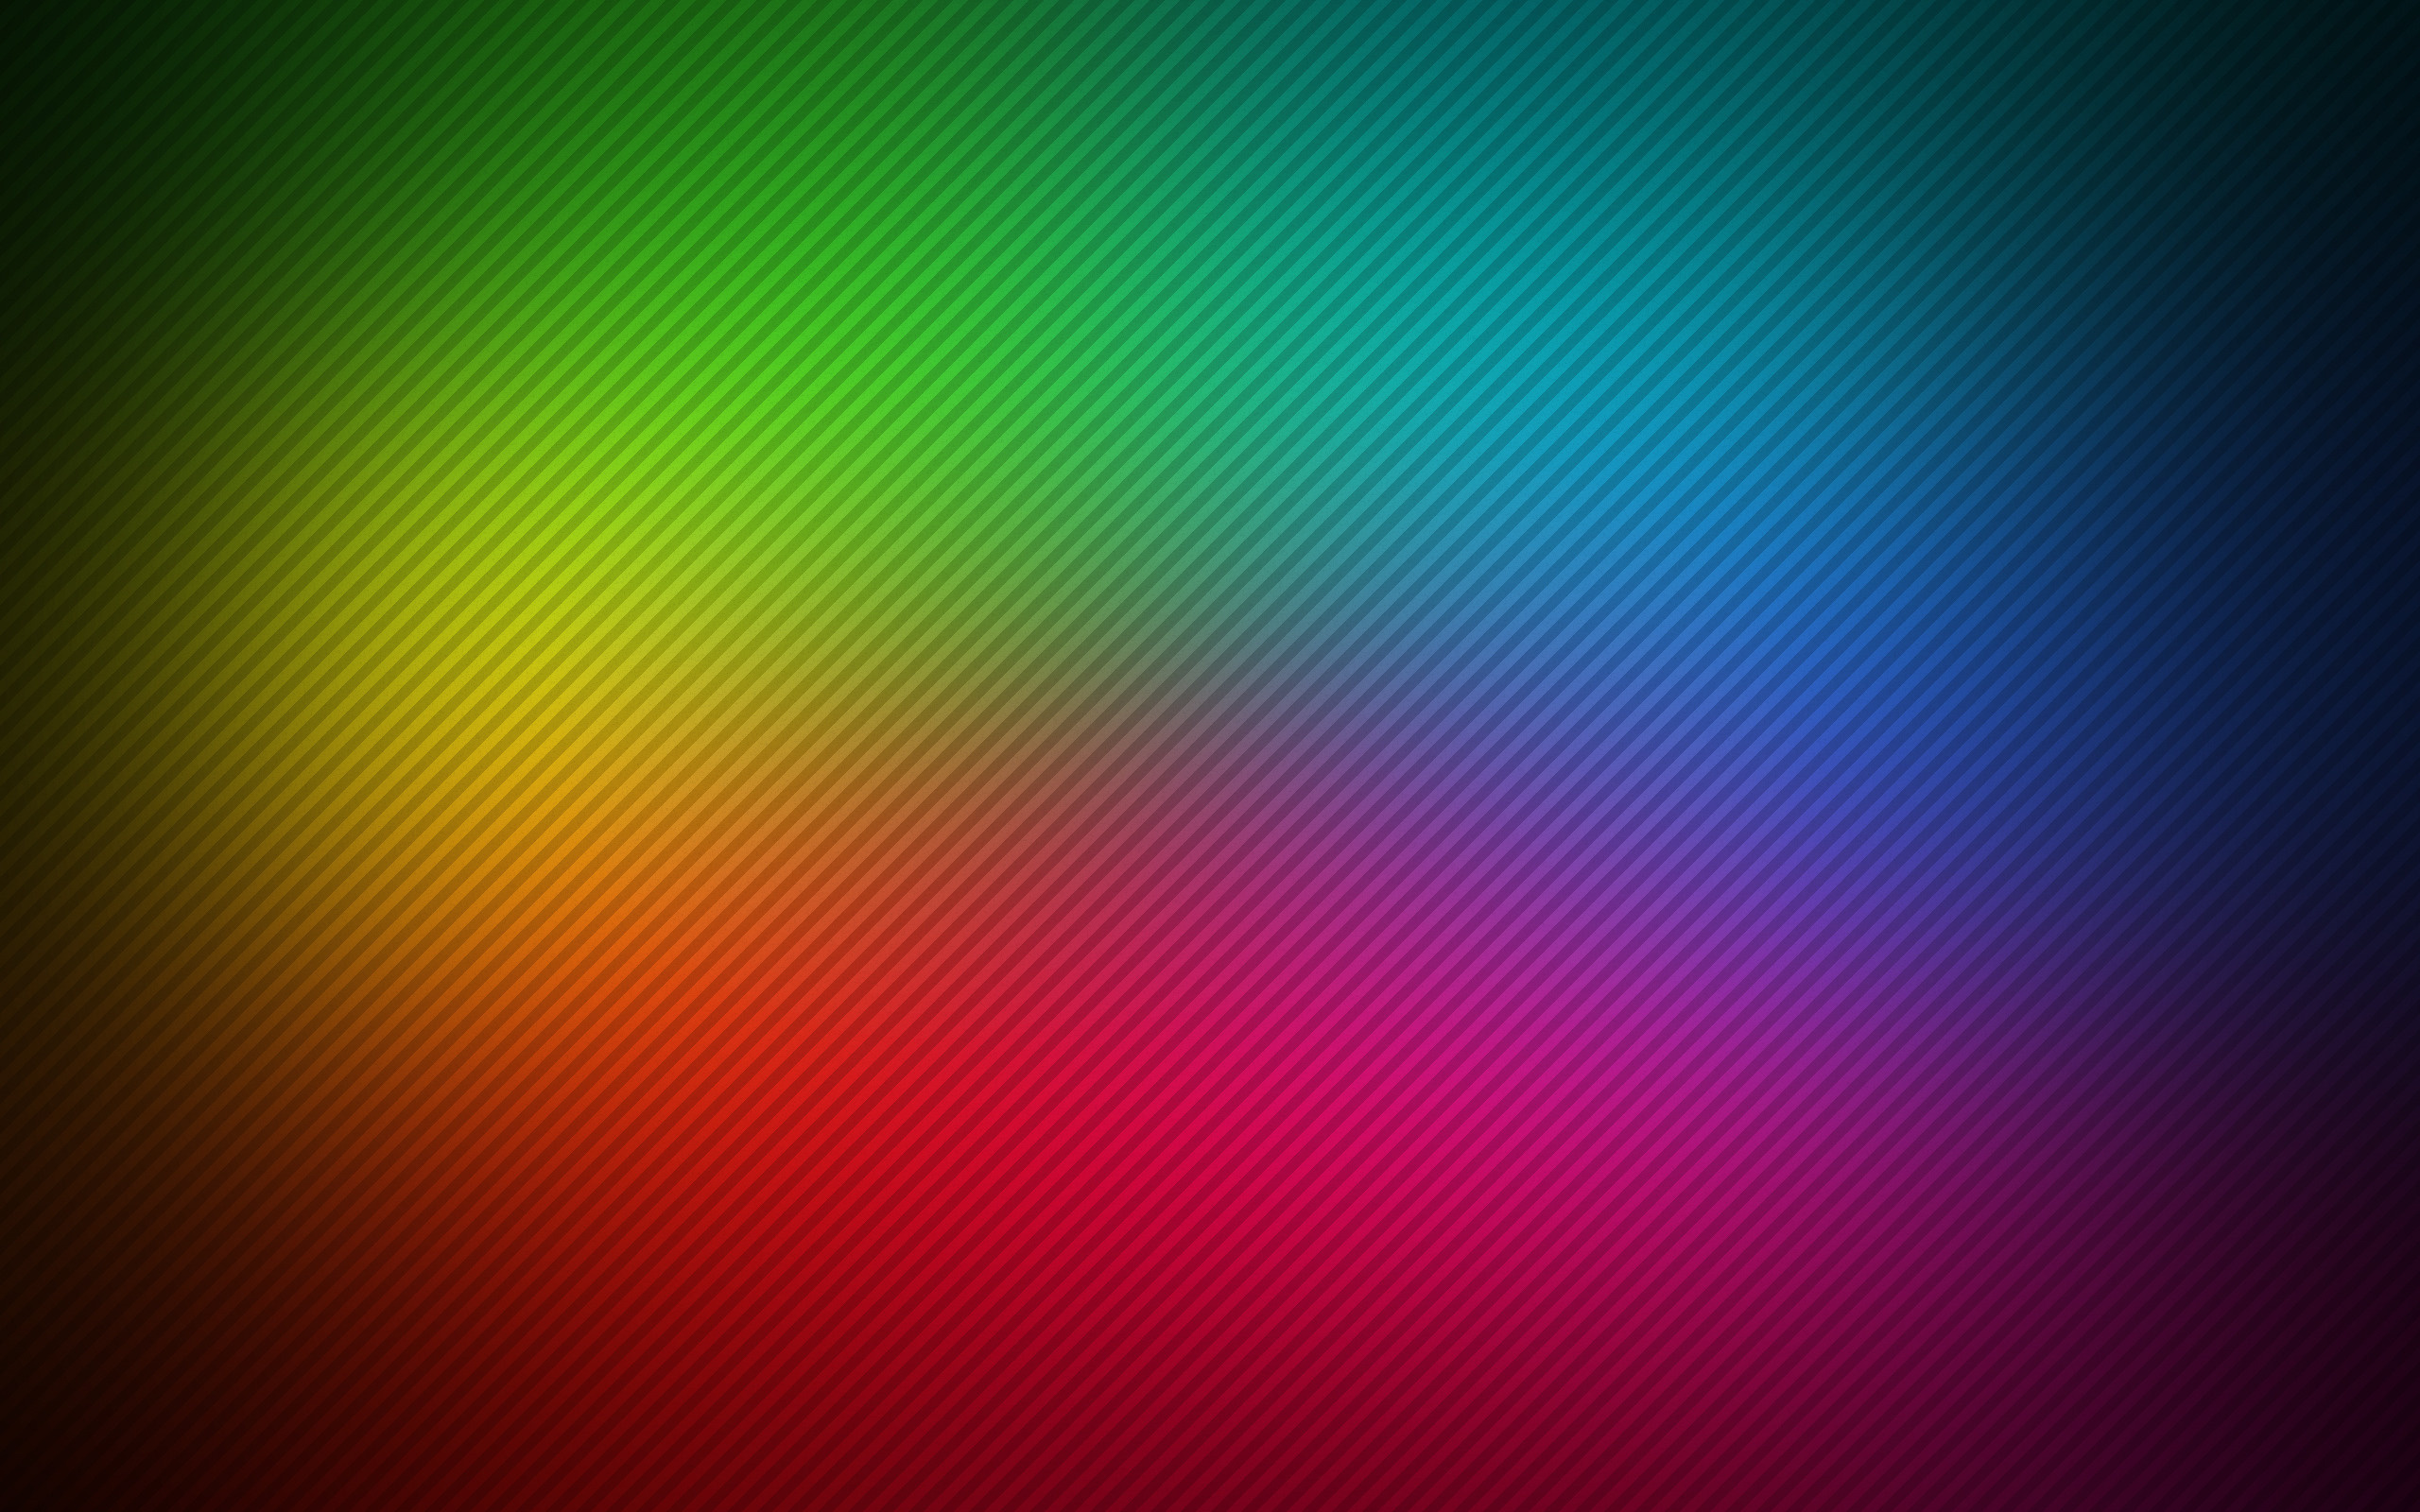 computer wallpaper bright colors pc android iphone and ipad wallpapers 2560x1600